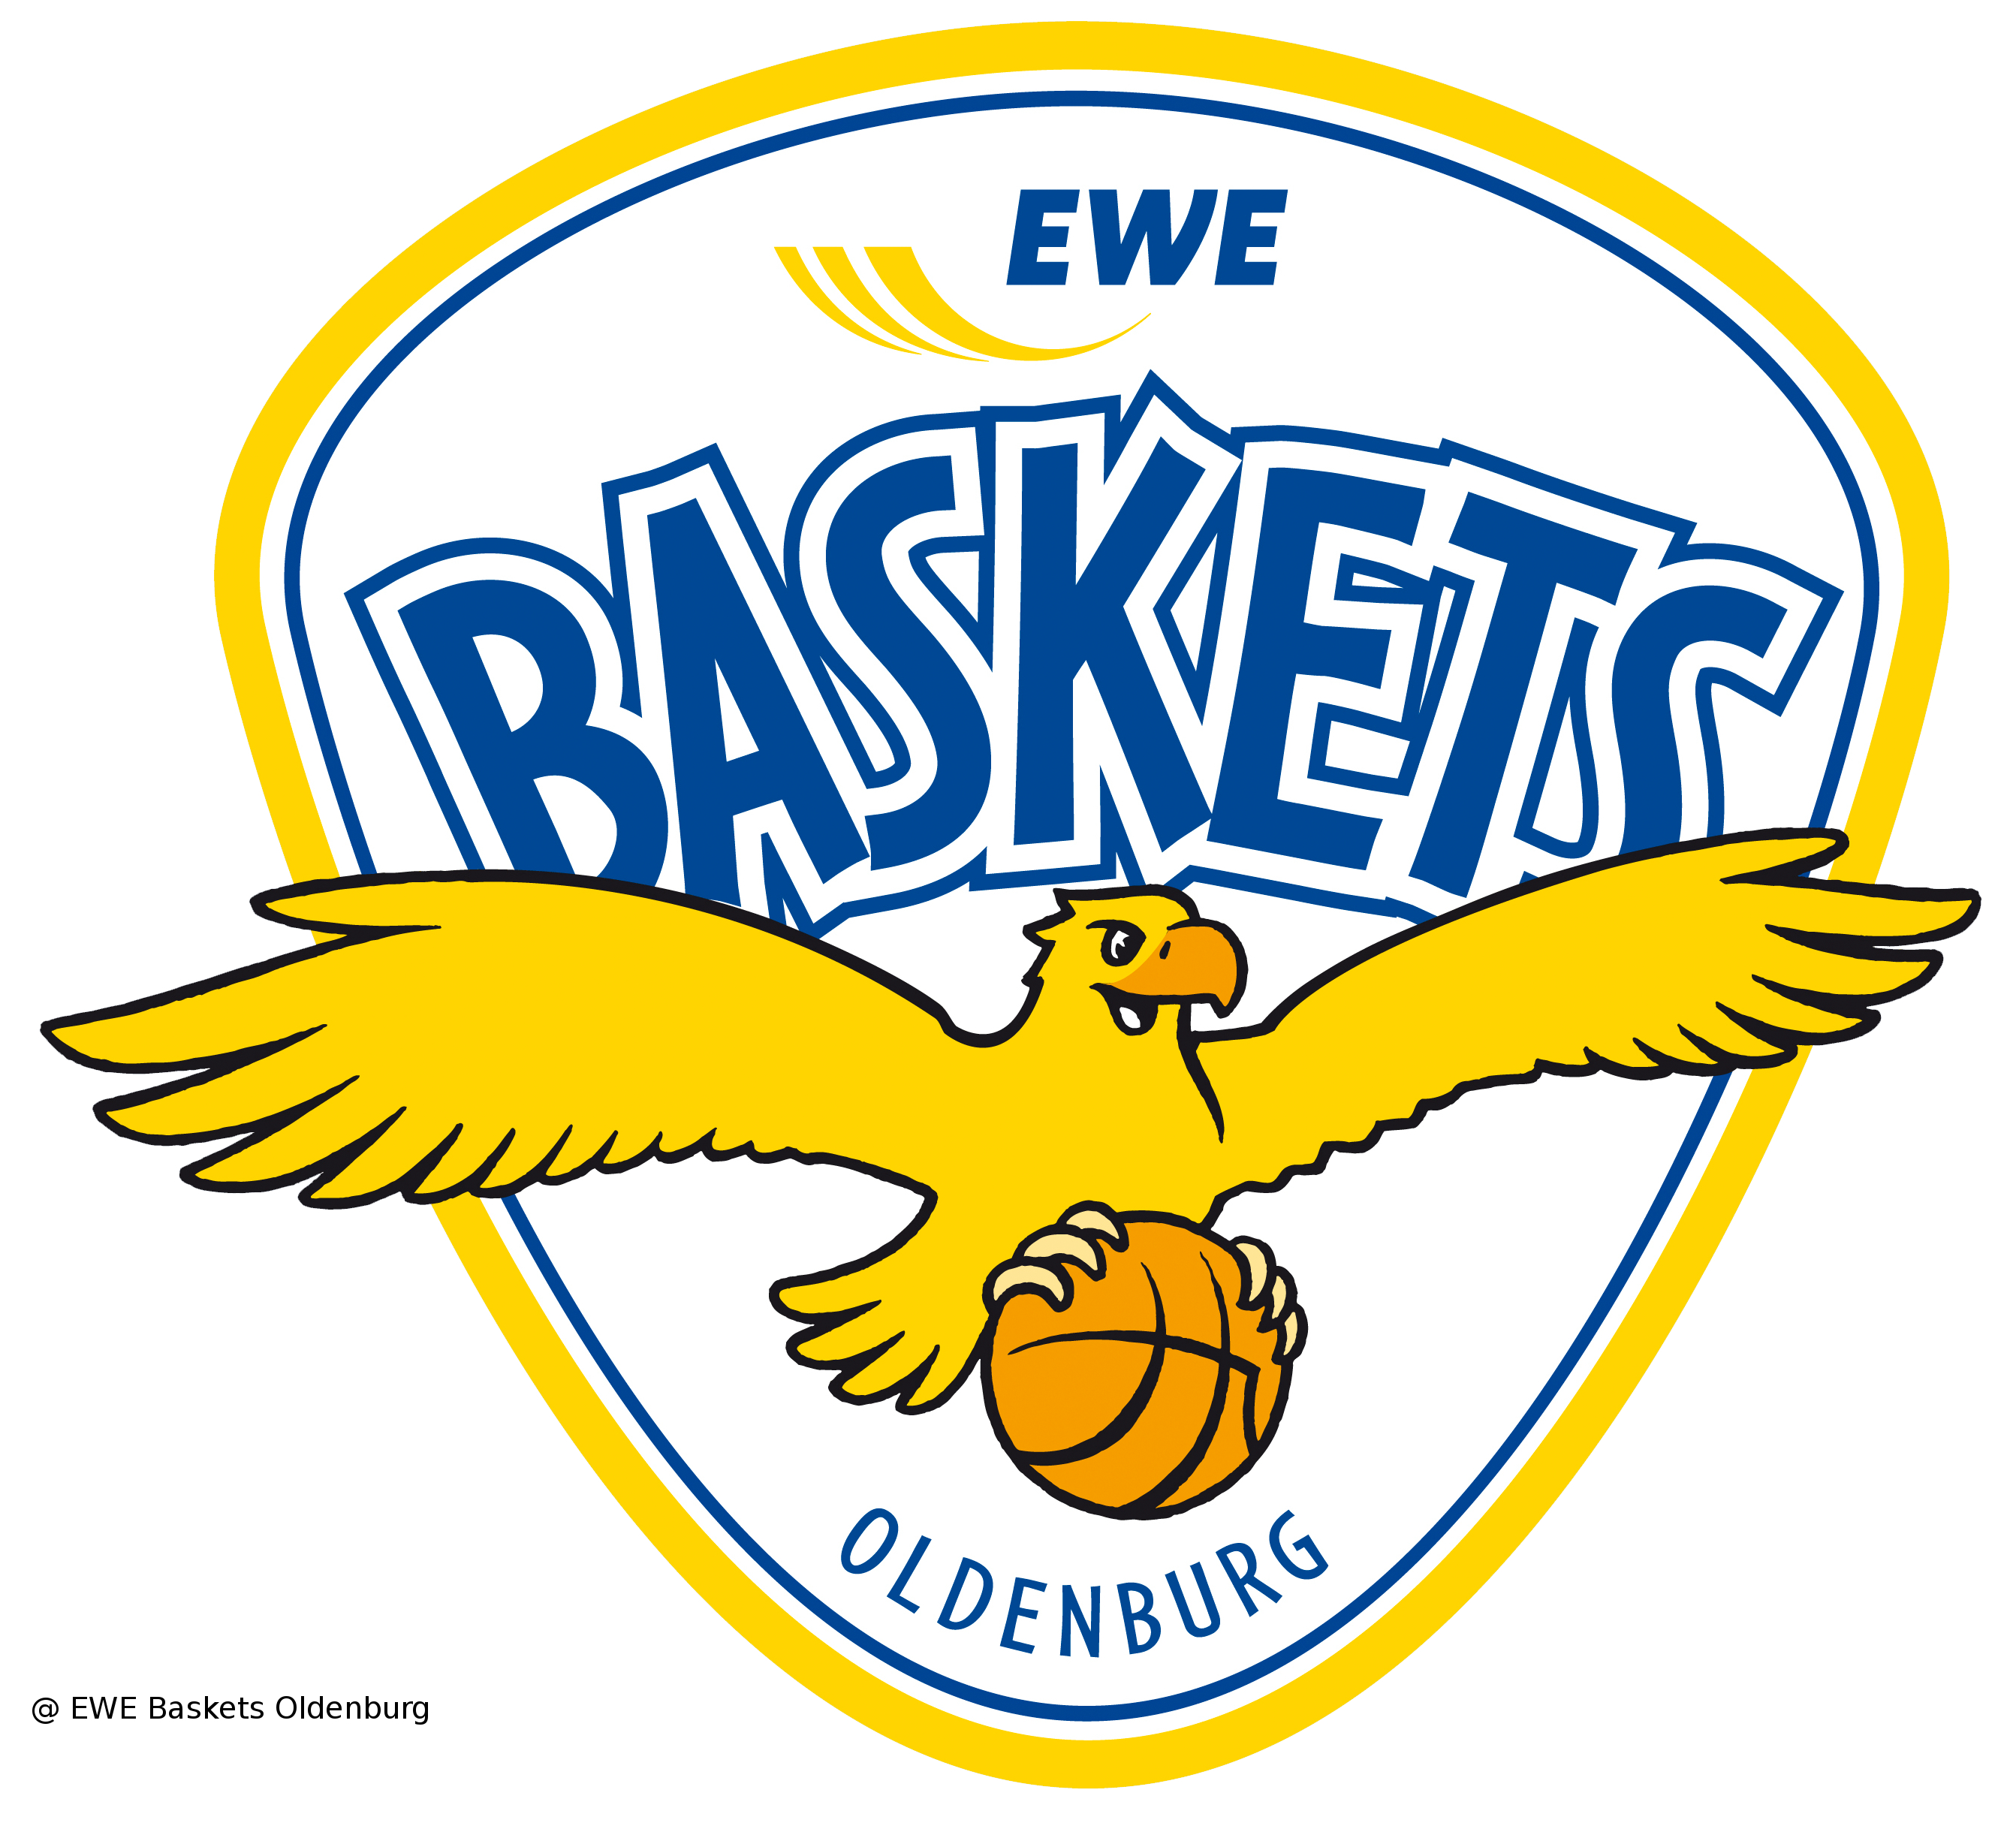 EWE Baskets Oldenburg verlieren Philipp Neumann